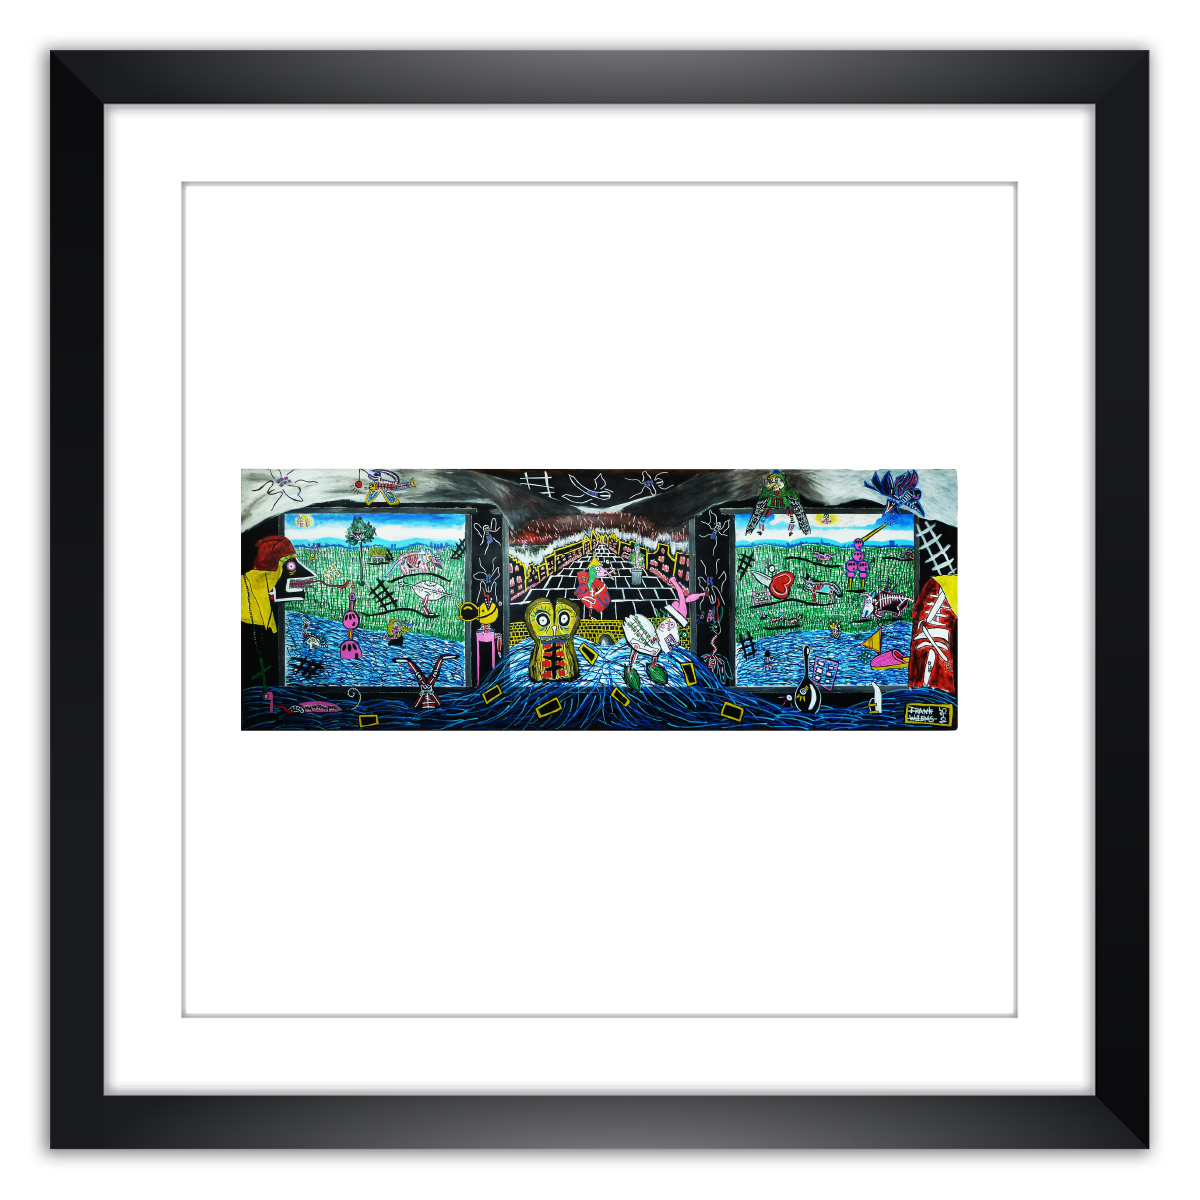 Limited prints - JÉBÉ & THE FMC - GREATEST HITS framed - Frank Willems